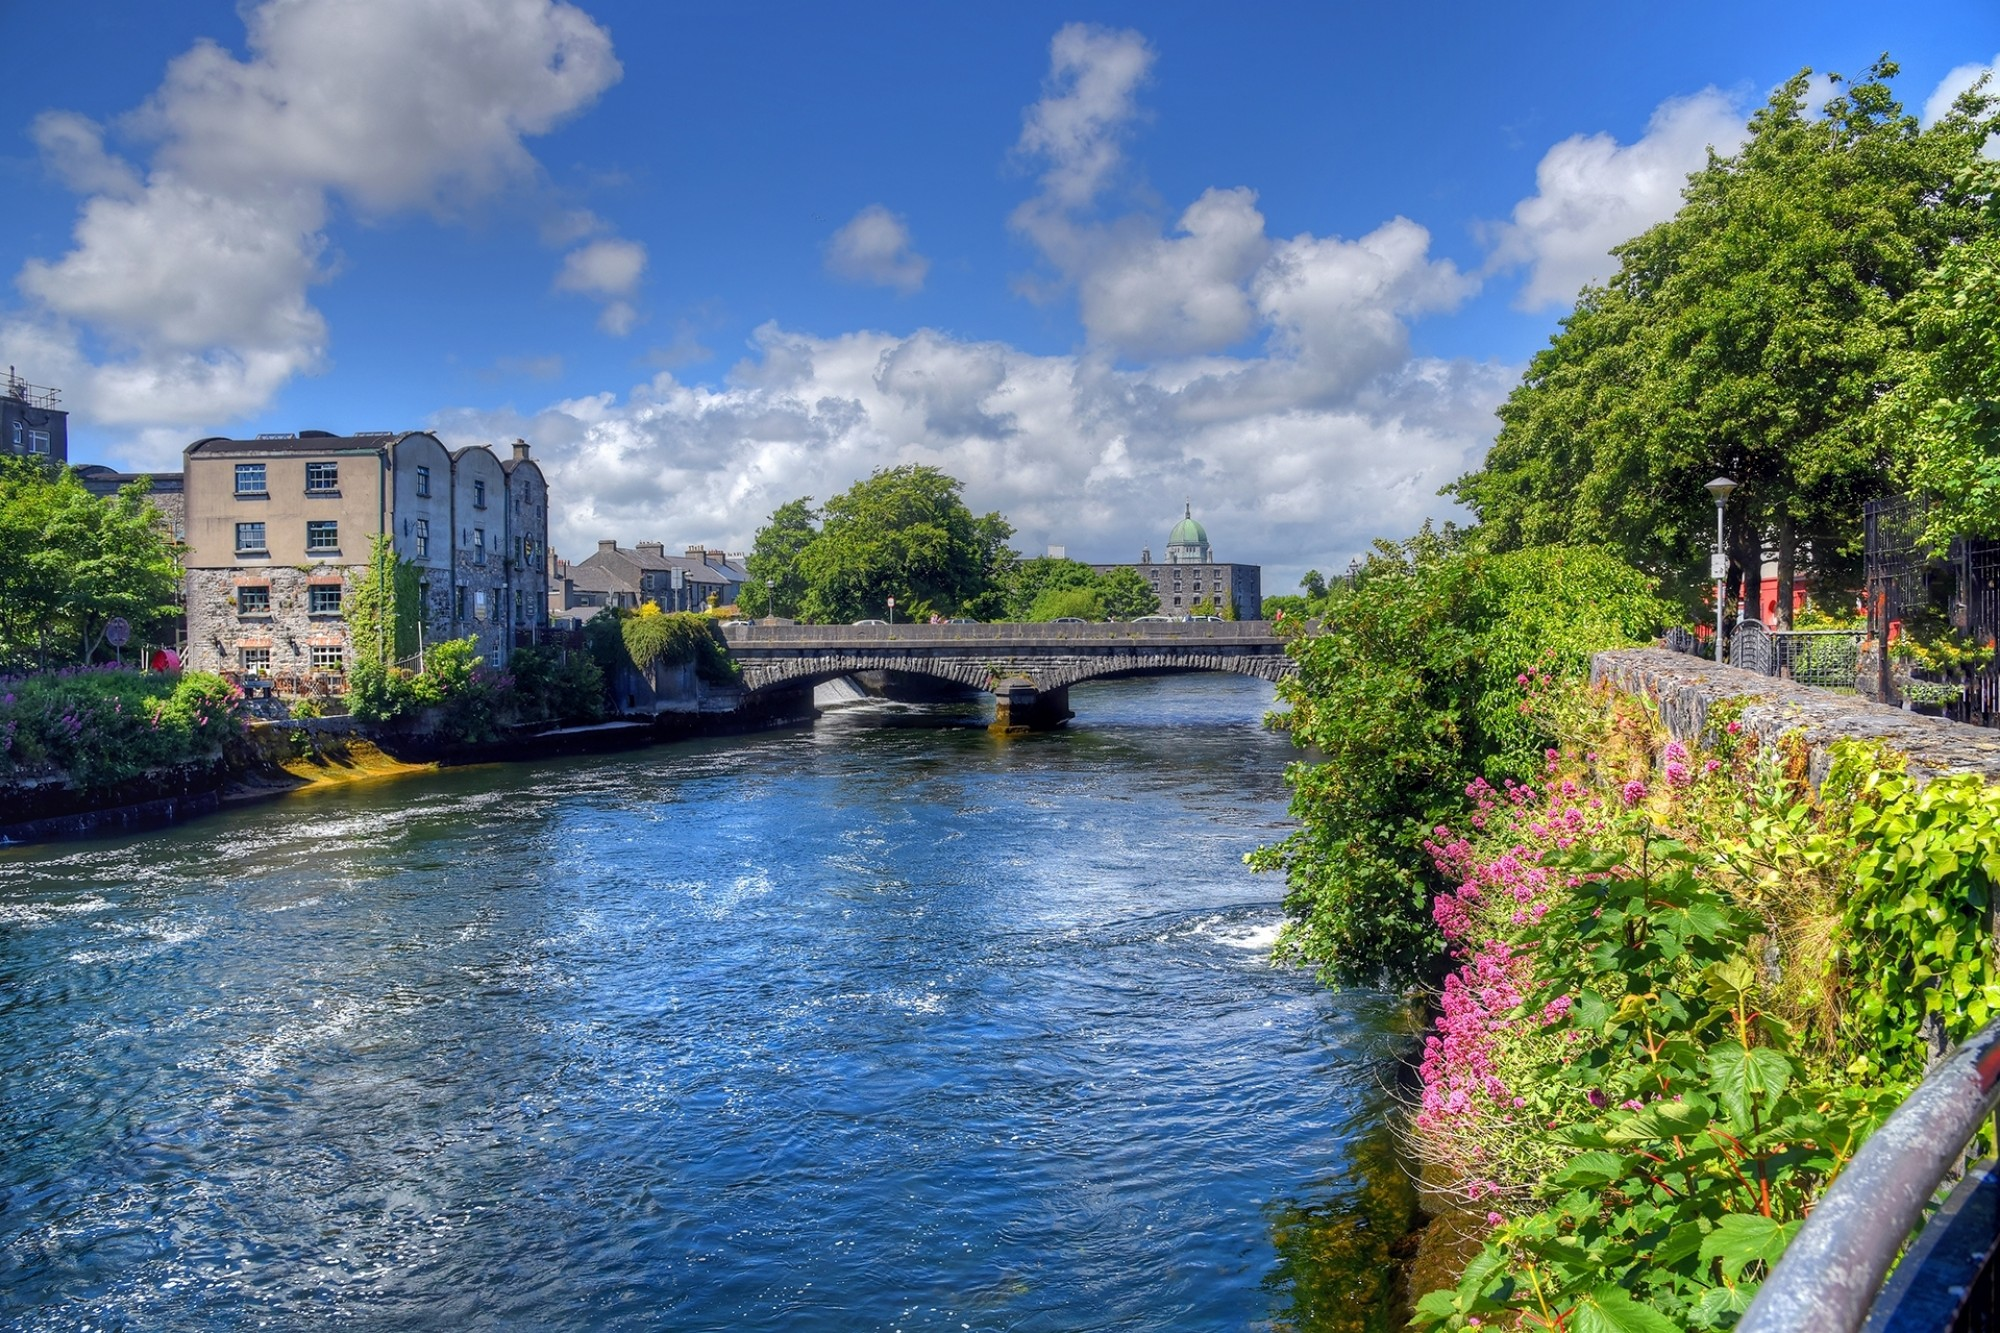 Galway Ireland and the River Corrib